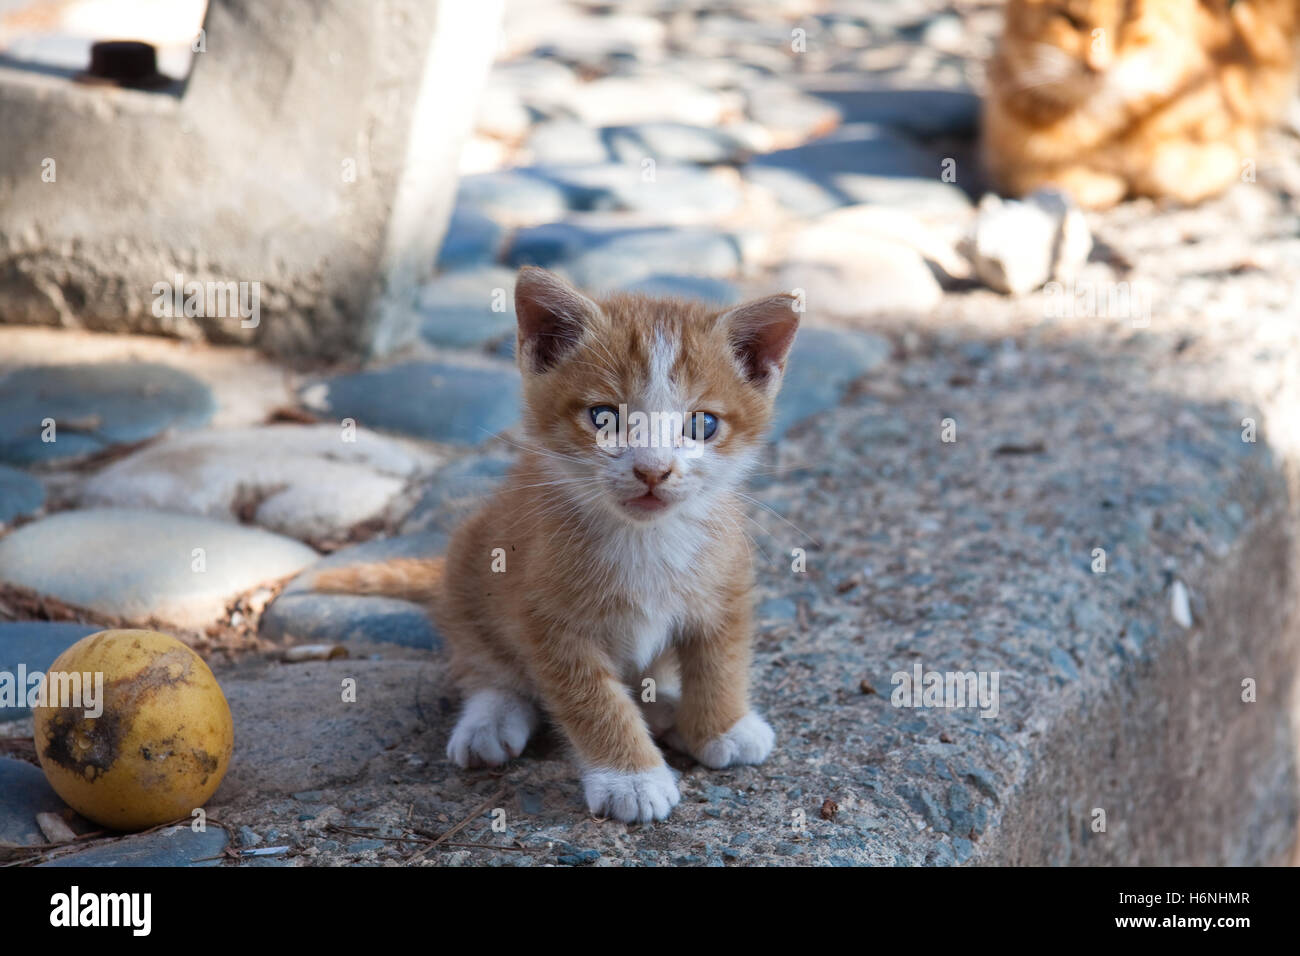 home animals - Stock Image